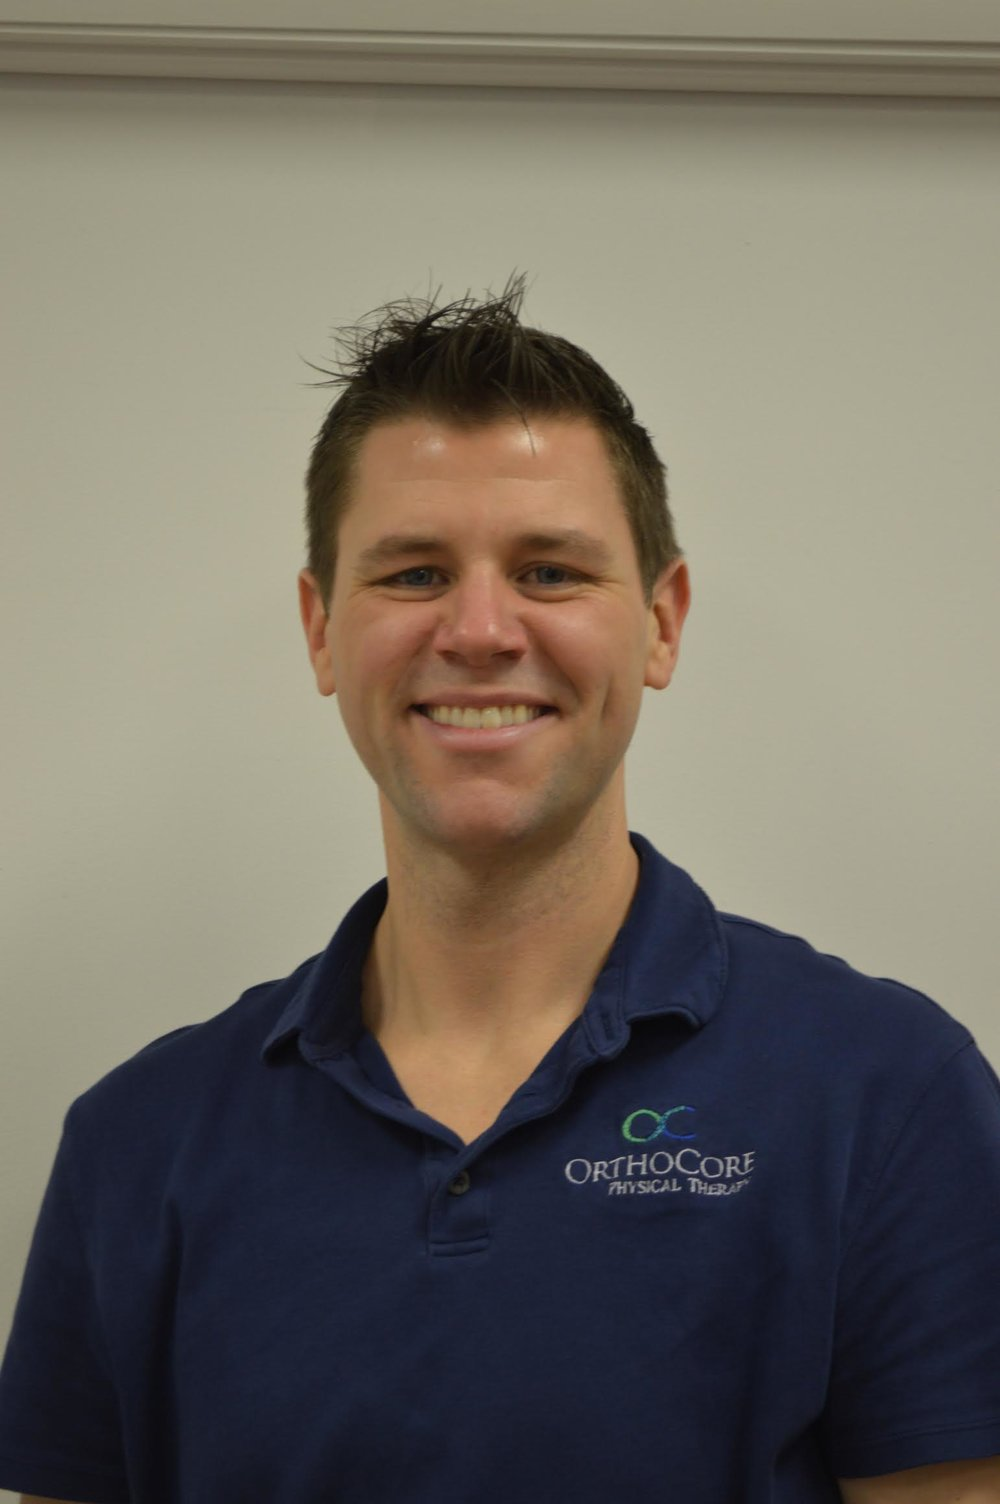 Ian Manning of OrthoCore Physical Therapy in North Kingstown, Rhode Island.